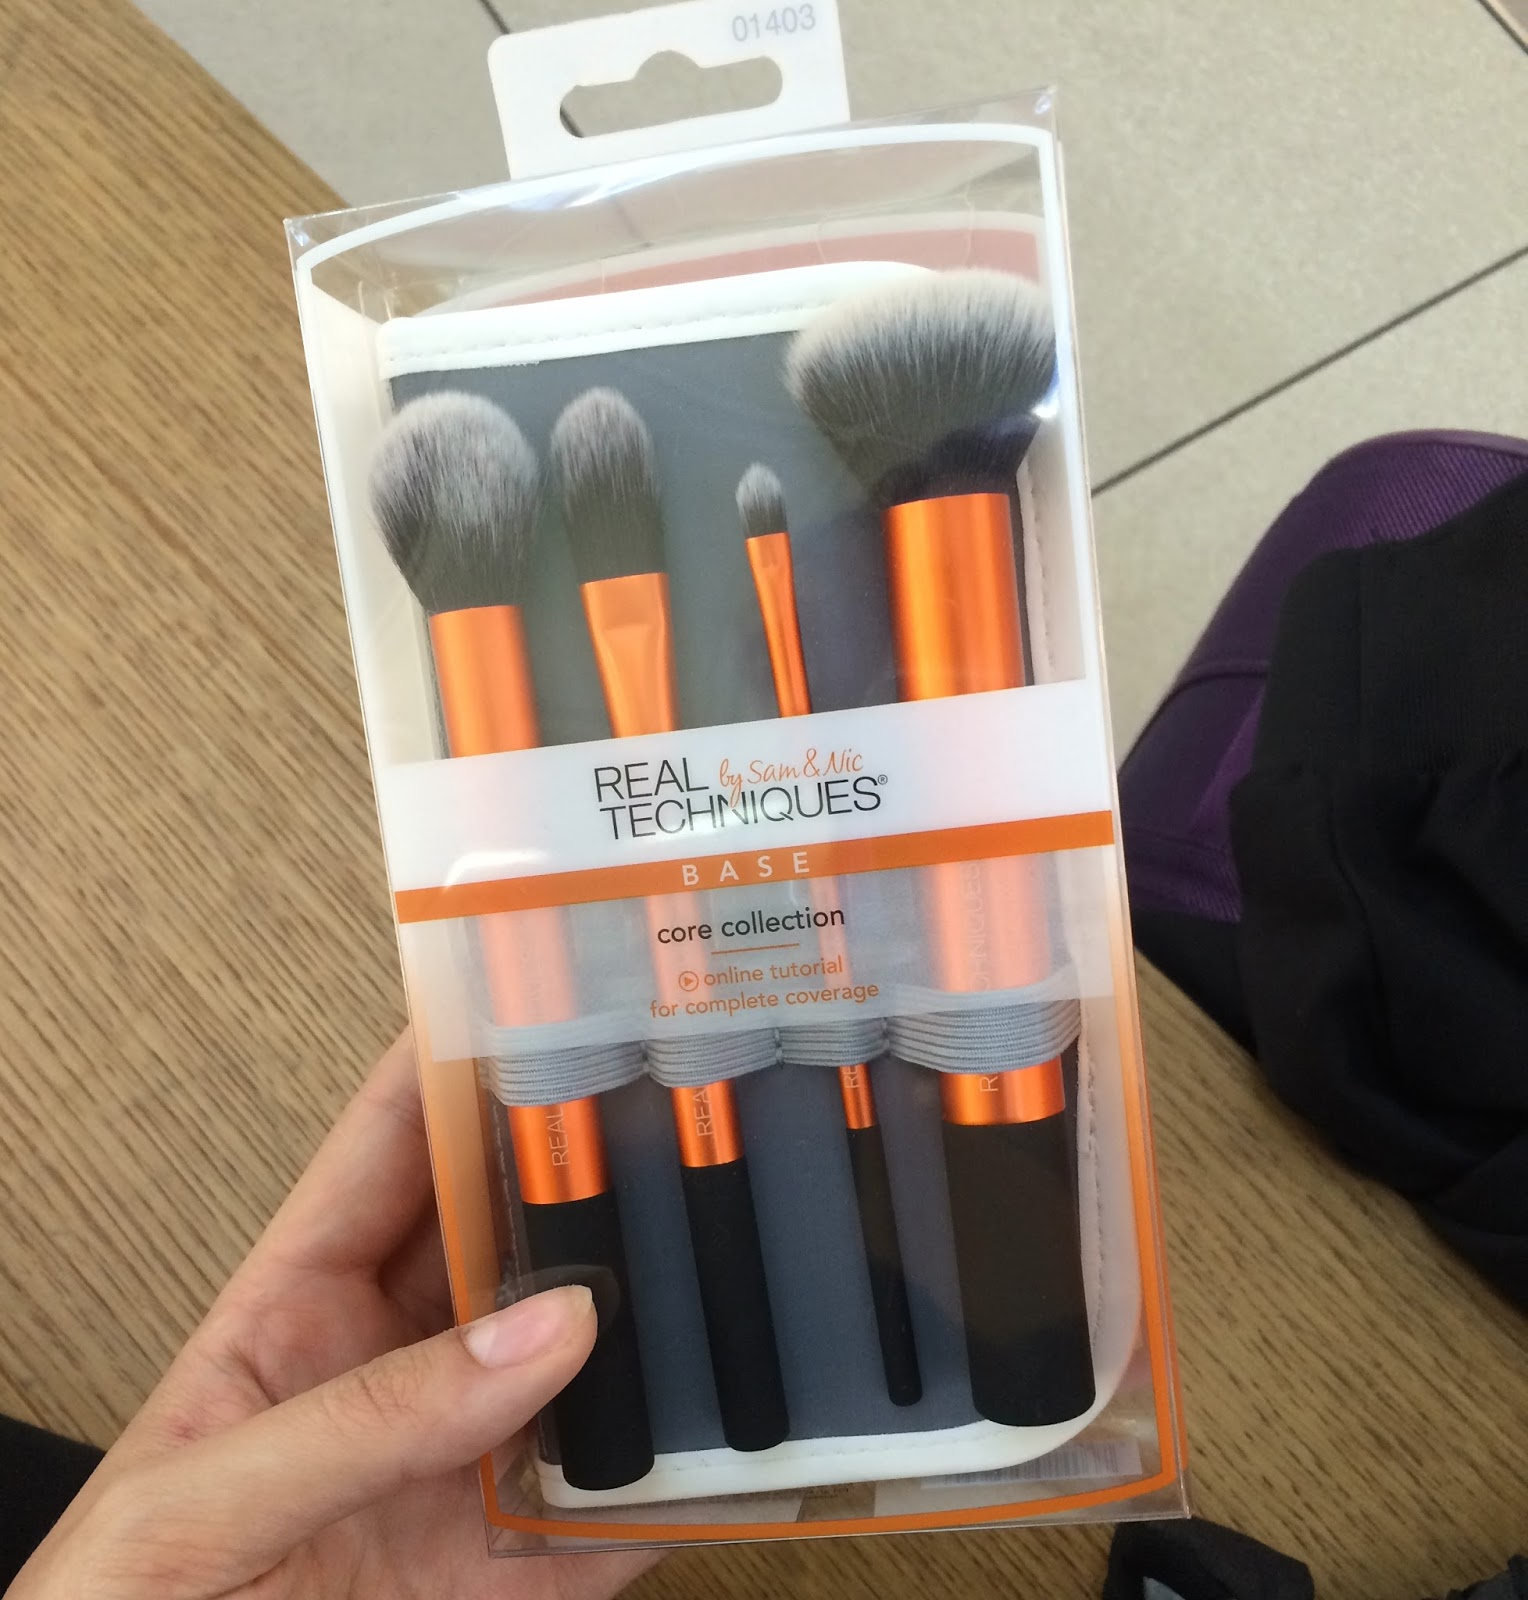 Real Technique make-up brushes from Boots